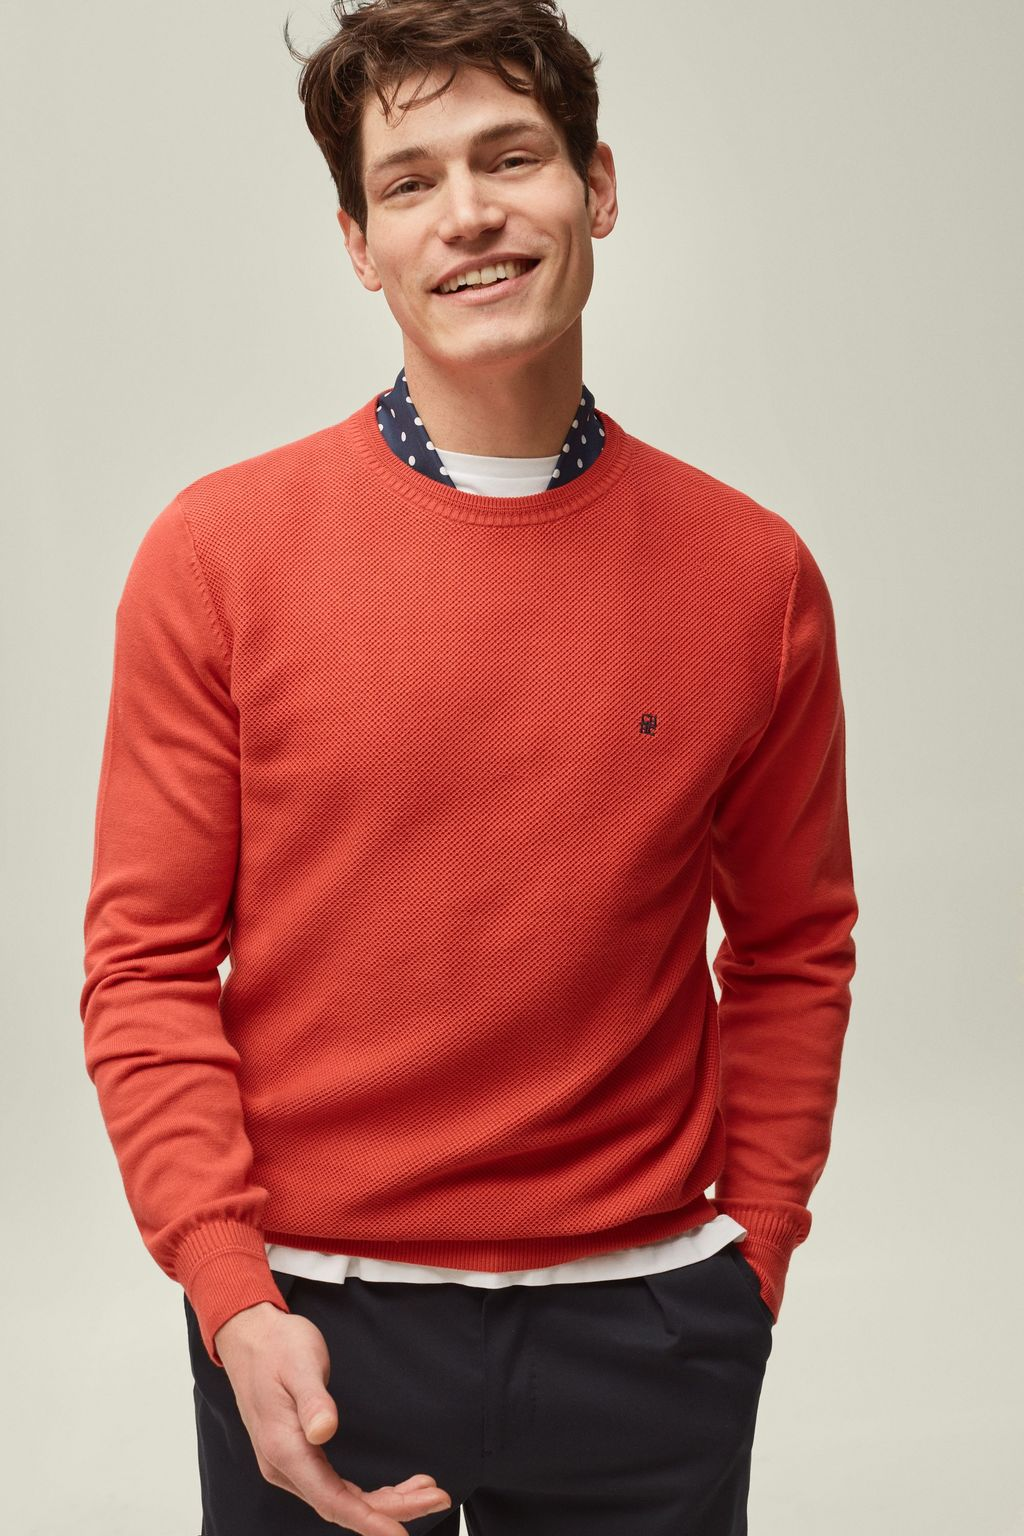 Textured combed cotton sweater